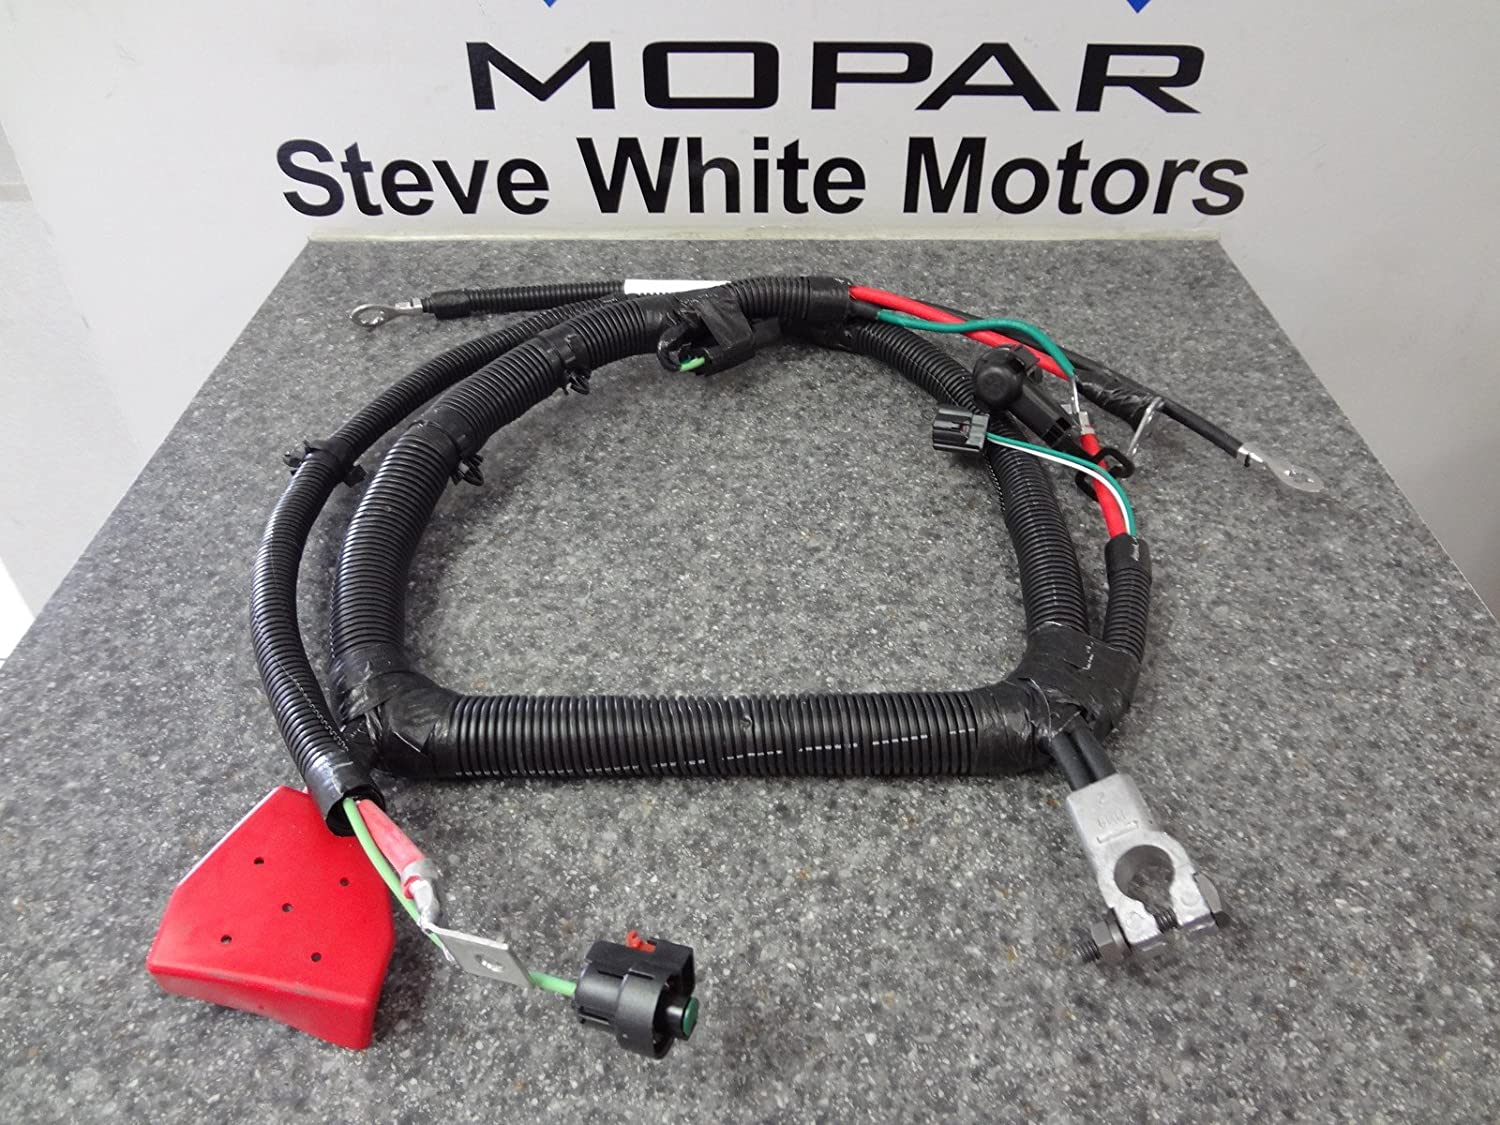 81ME6KtdwrL._SL1500_ amazon com 1999 2000 jeep grand cherokee battery cable wiring battery cable wiring harness at honlapkeszites.co